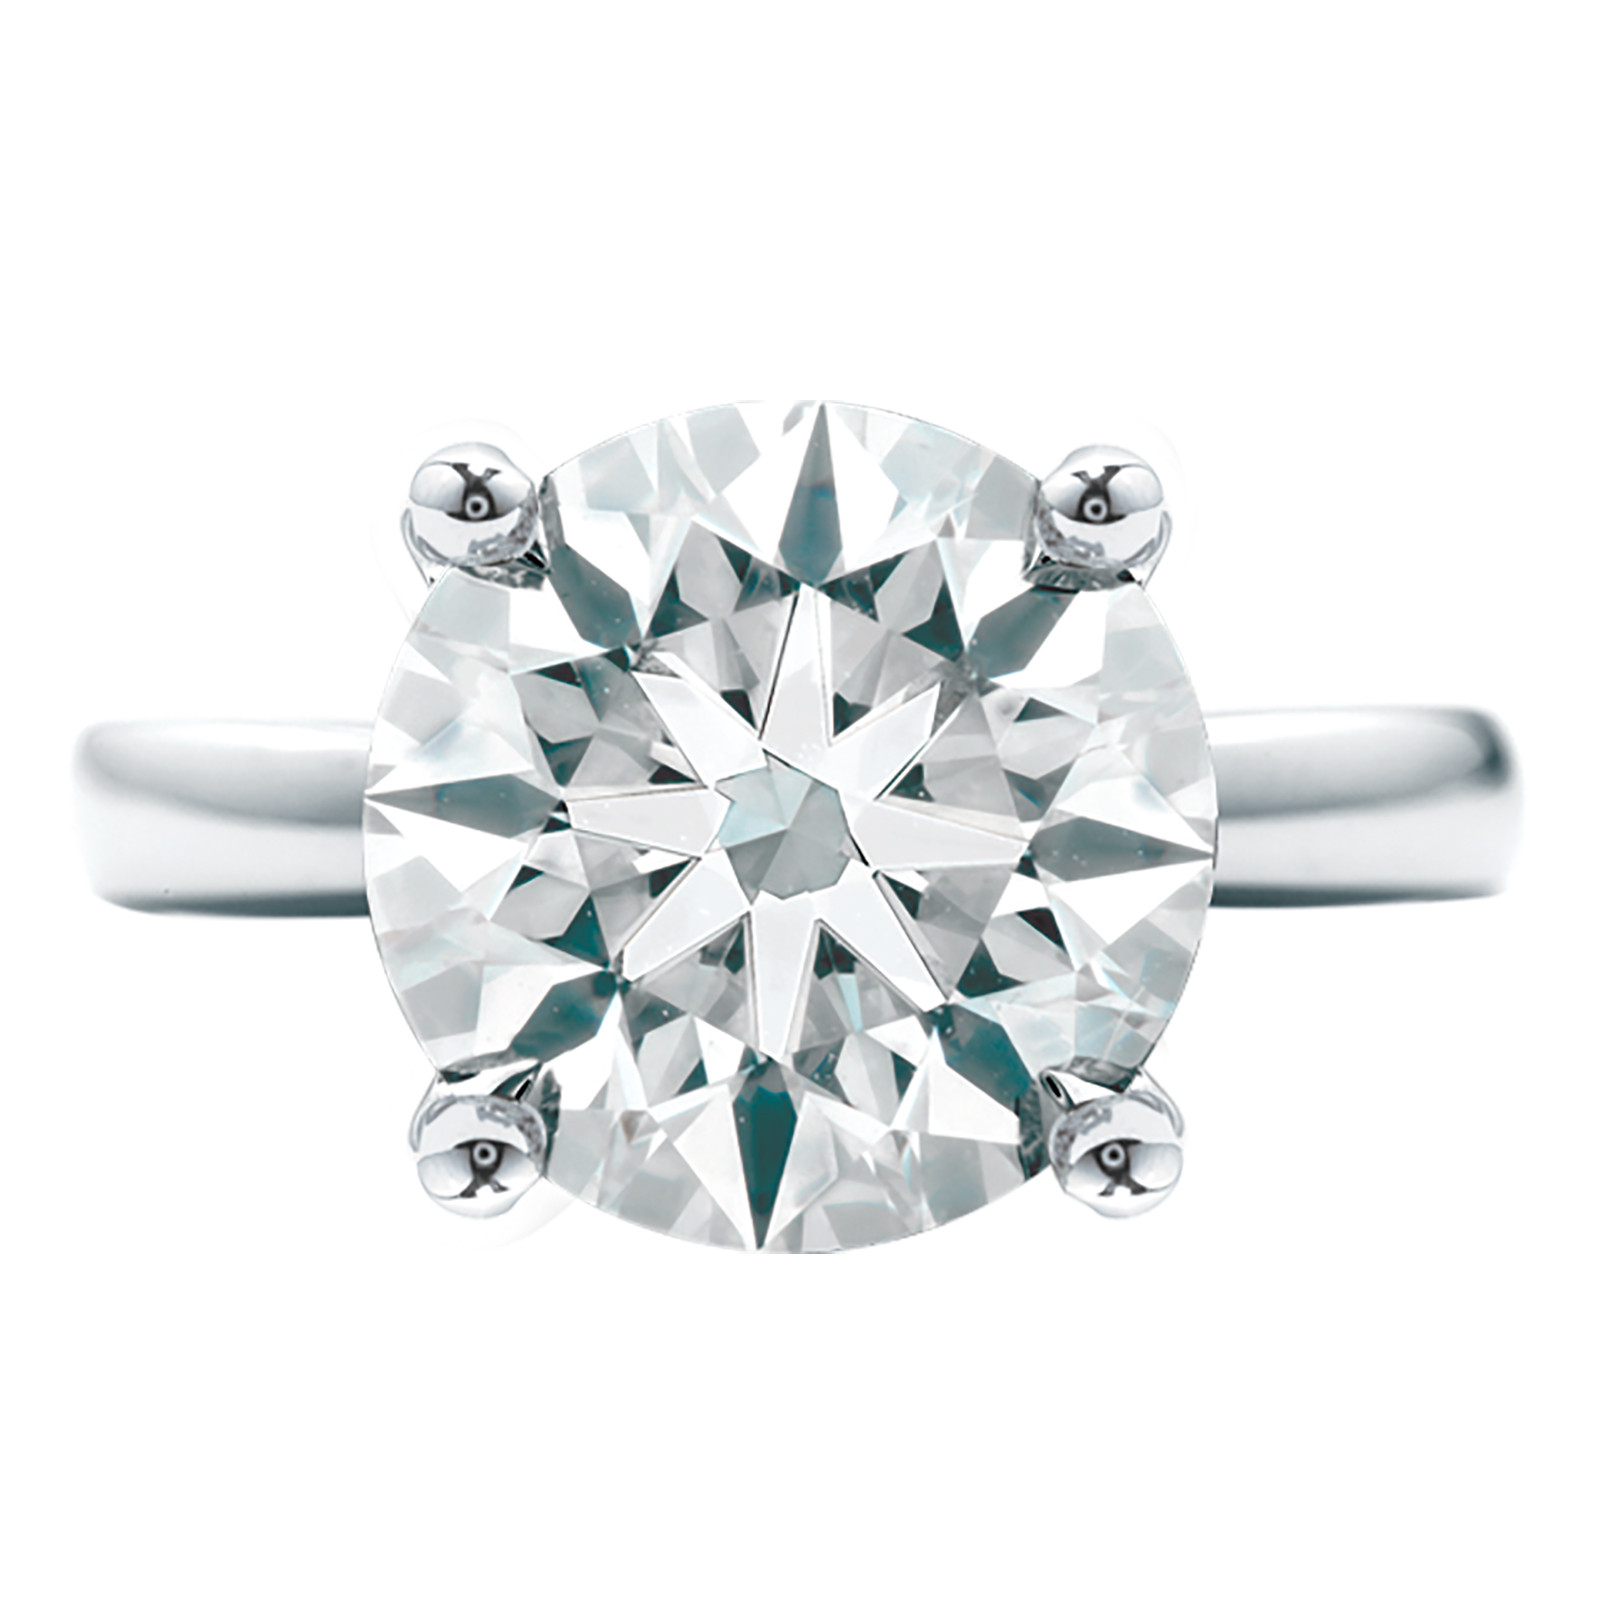 New Hearts On Fire® Serenity Select Complete 3.28 CT Diamond Solitaire